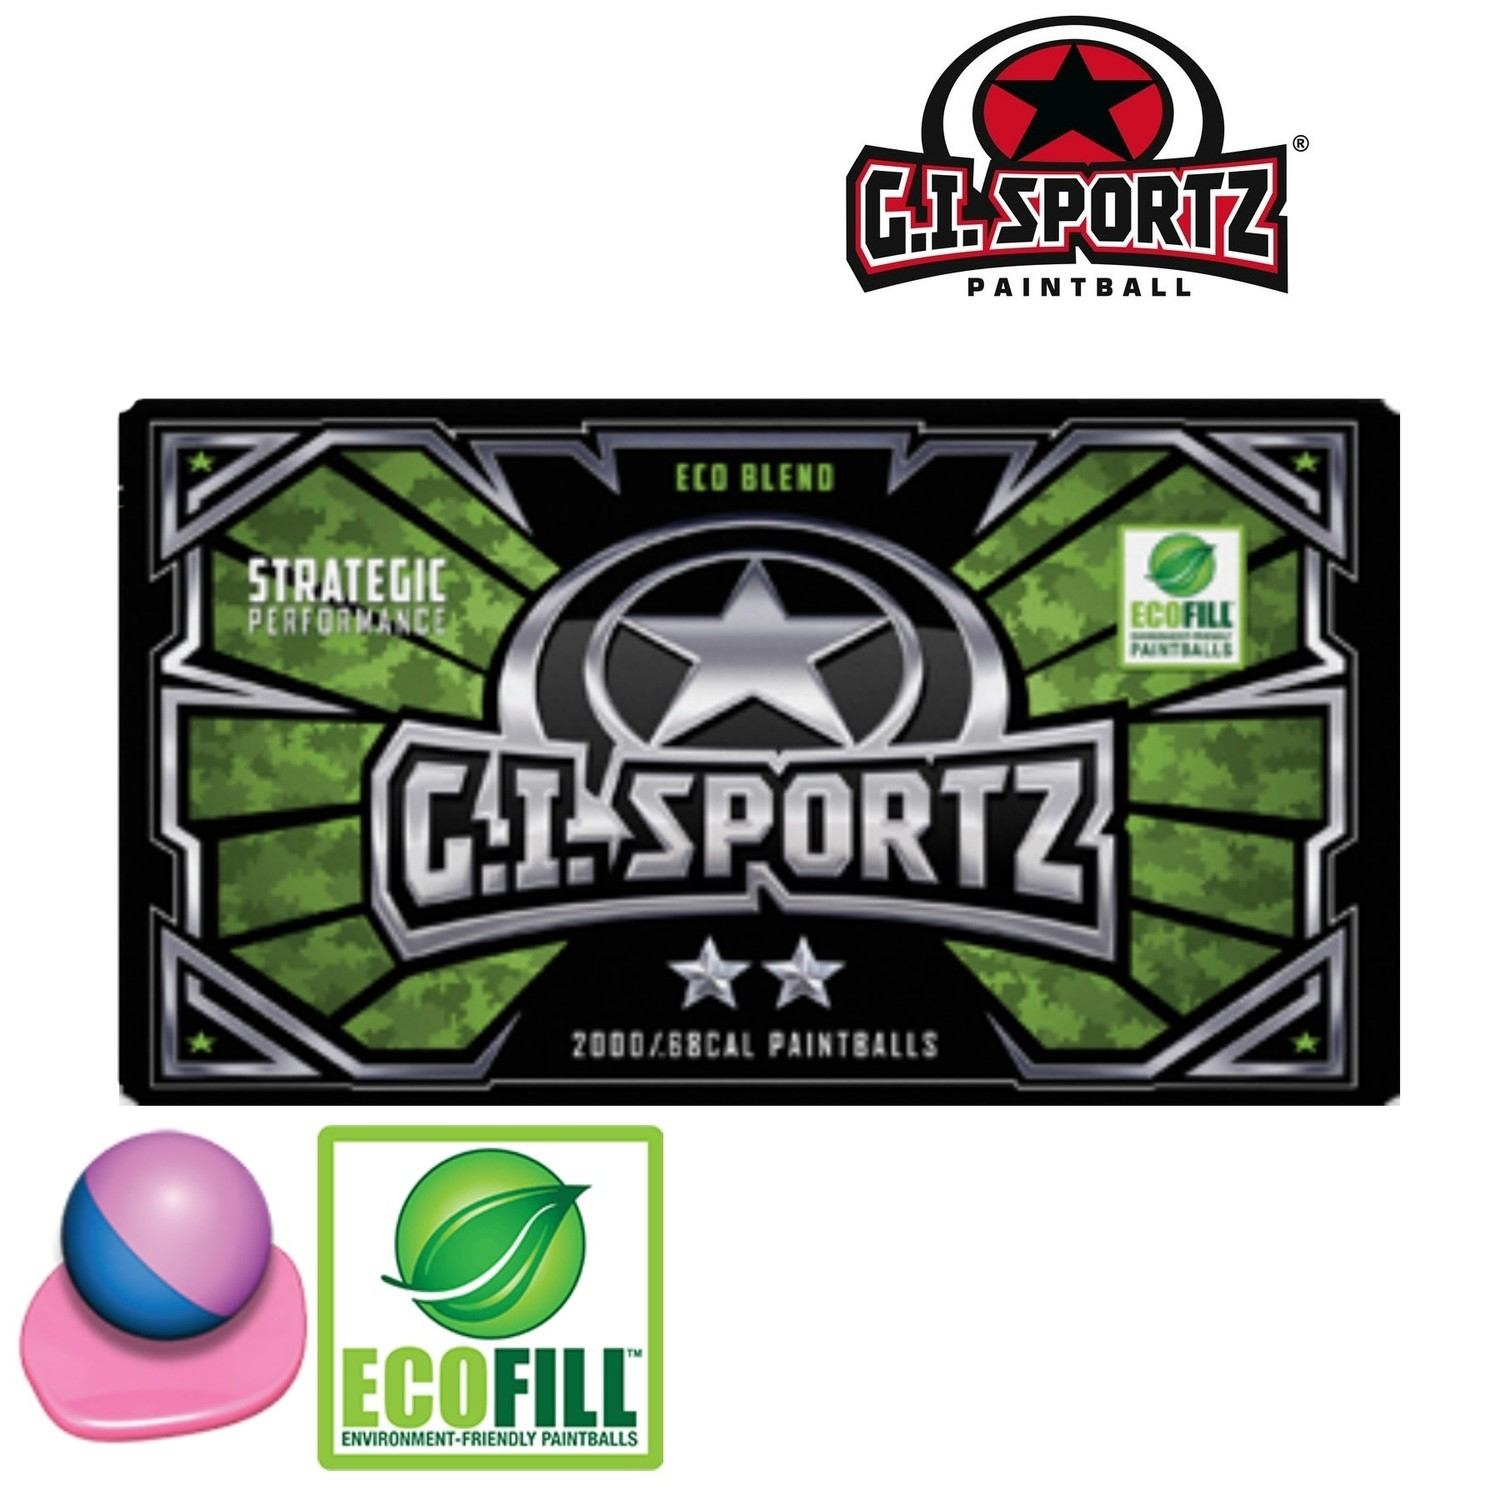 G.I. Sportz 2-Star .68 cal Paintballs - Case of 2000 Rds - Blue/Pink Shell - Pink Fill